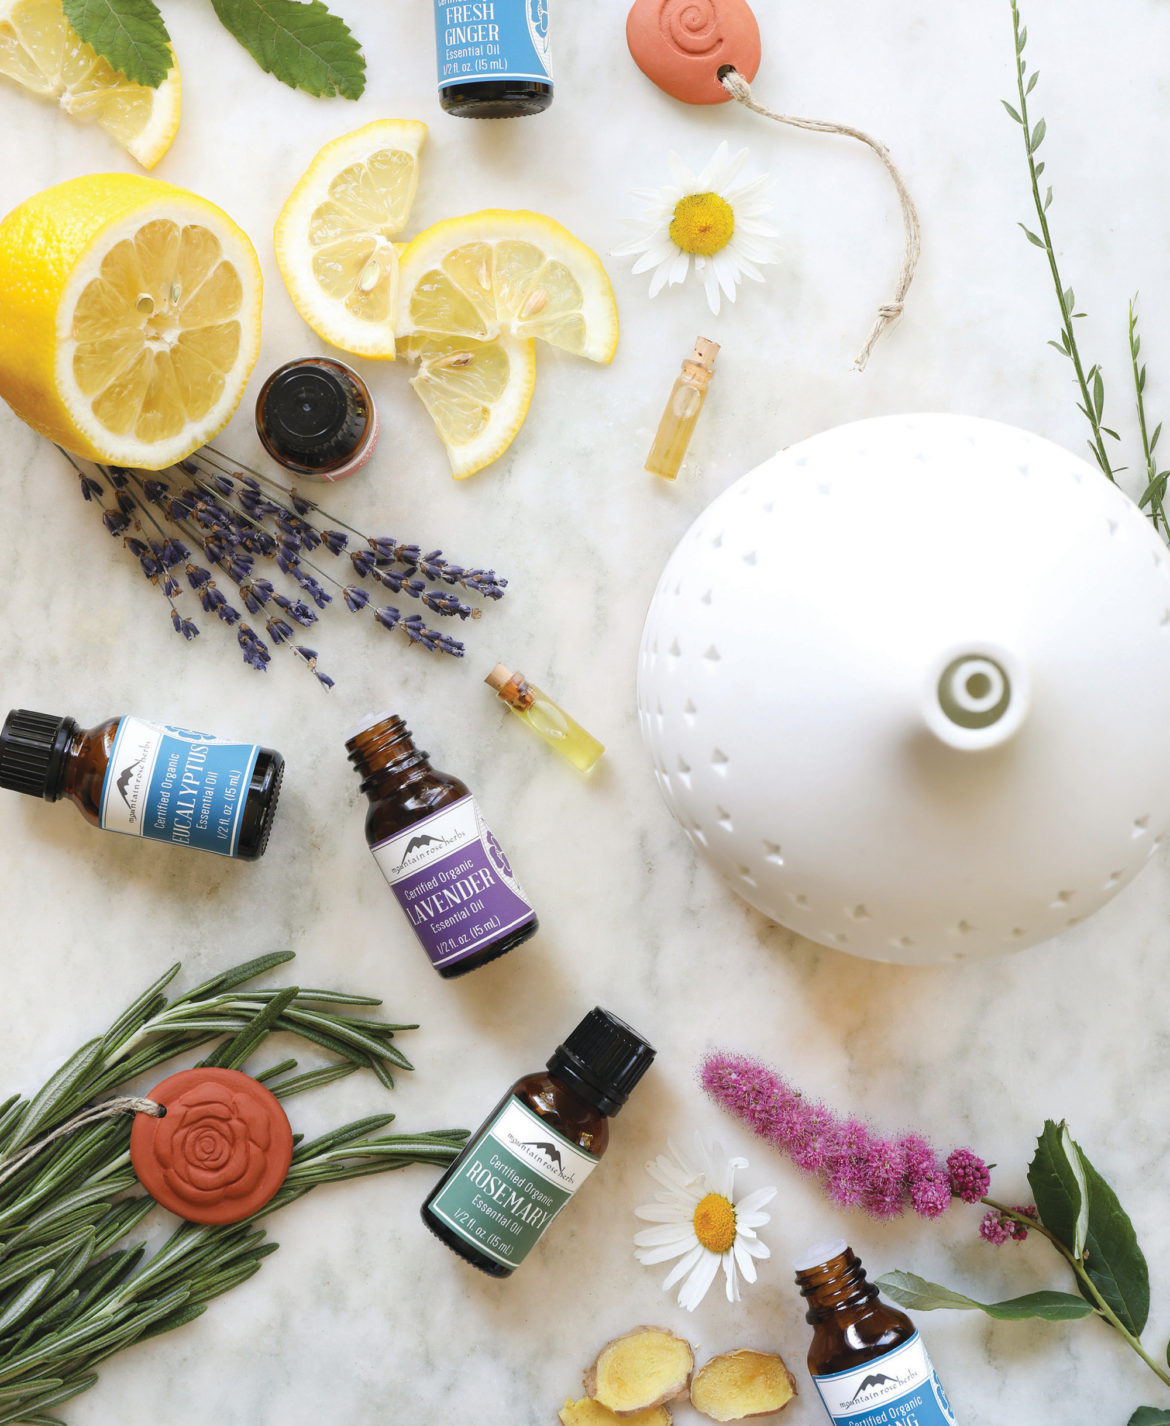 Mountain Rose Herbs offers organic essential oils for aromatherapy.